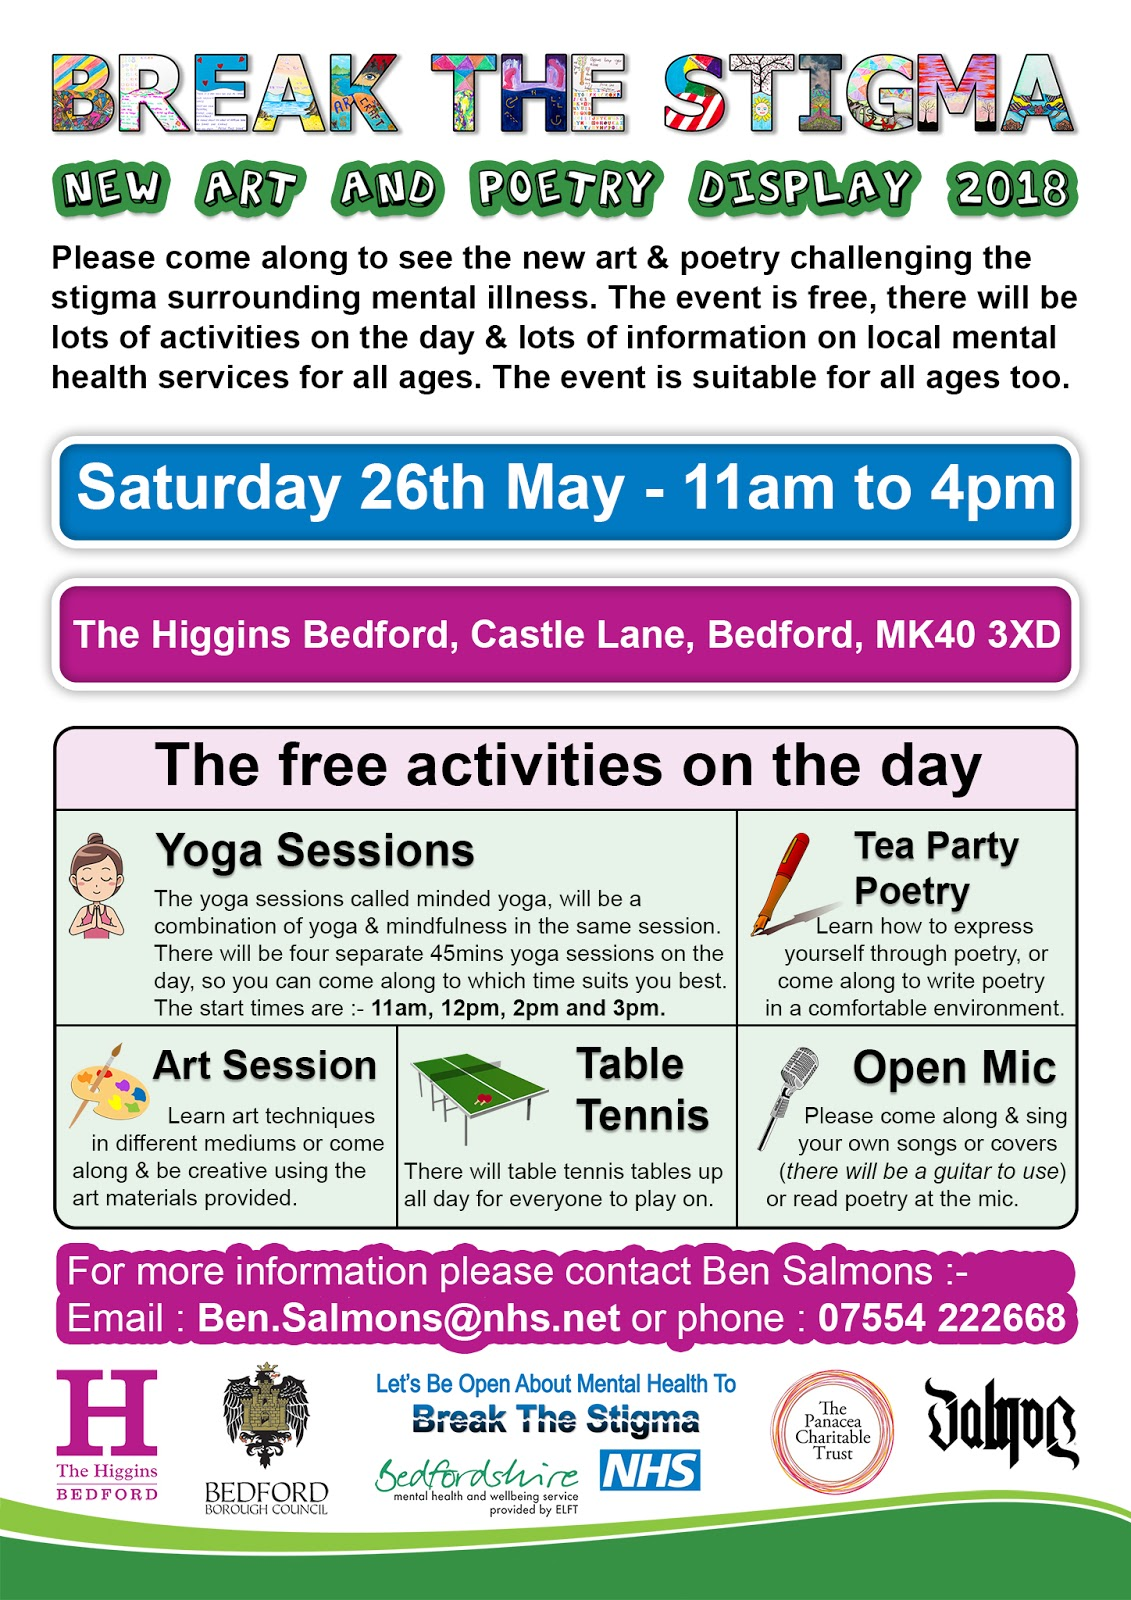 The Higgins Art Gallery Museum Bedford Break The Stigma Open Day